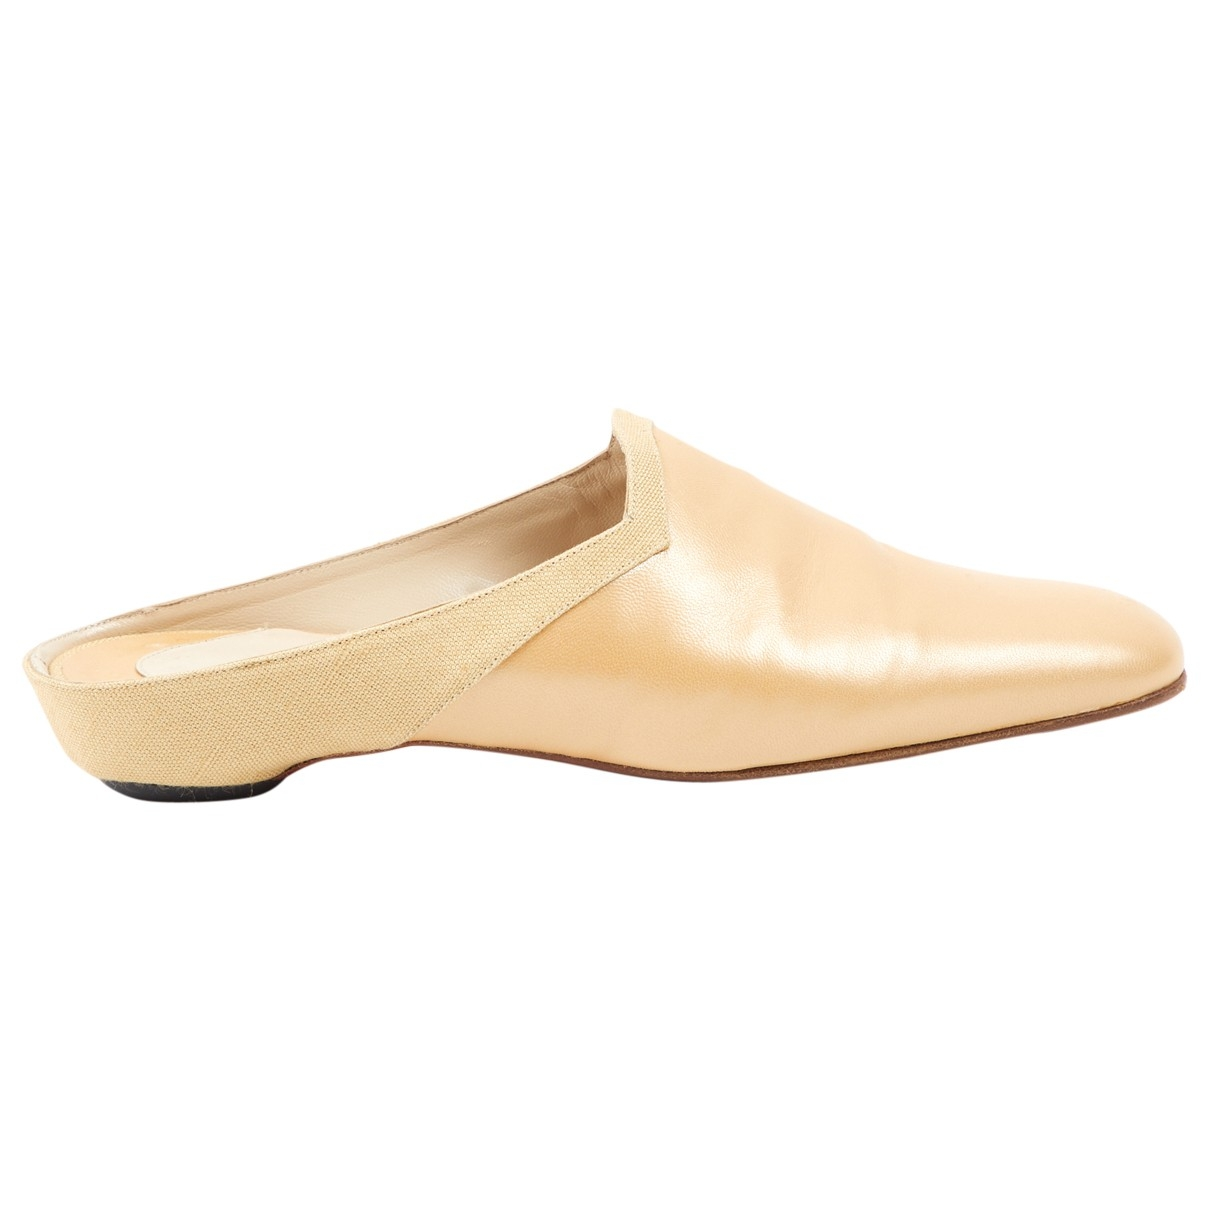 Christian Louboutin \N Beige Leather Mules & Clogs for Women 37.5 EU